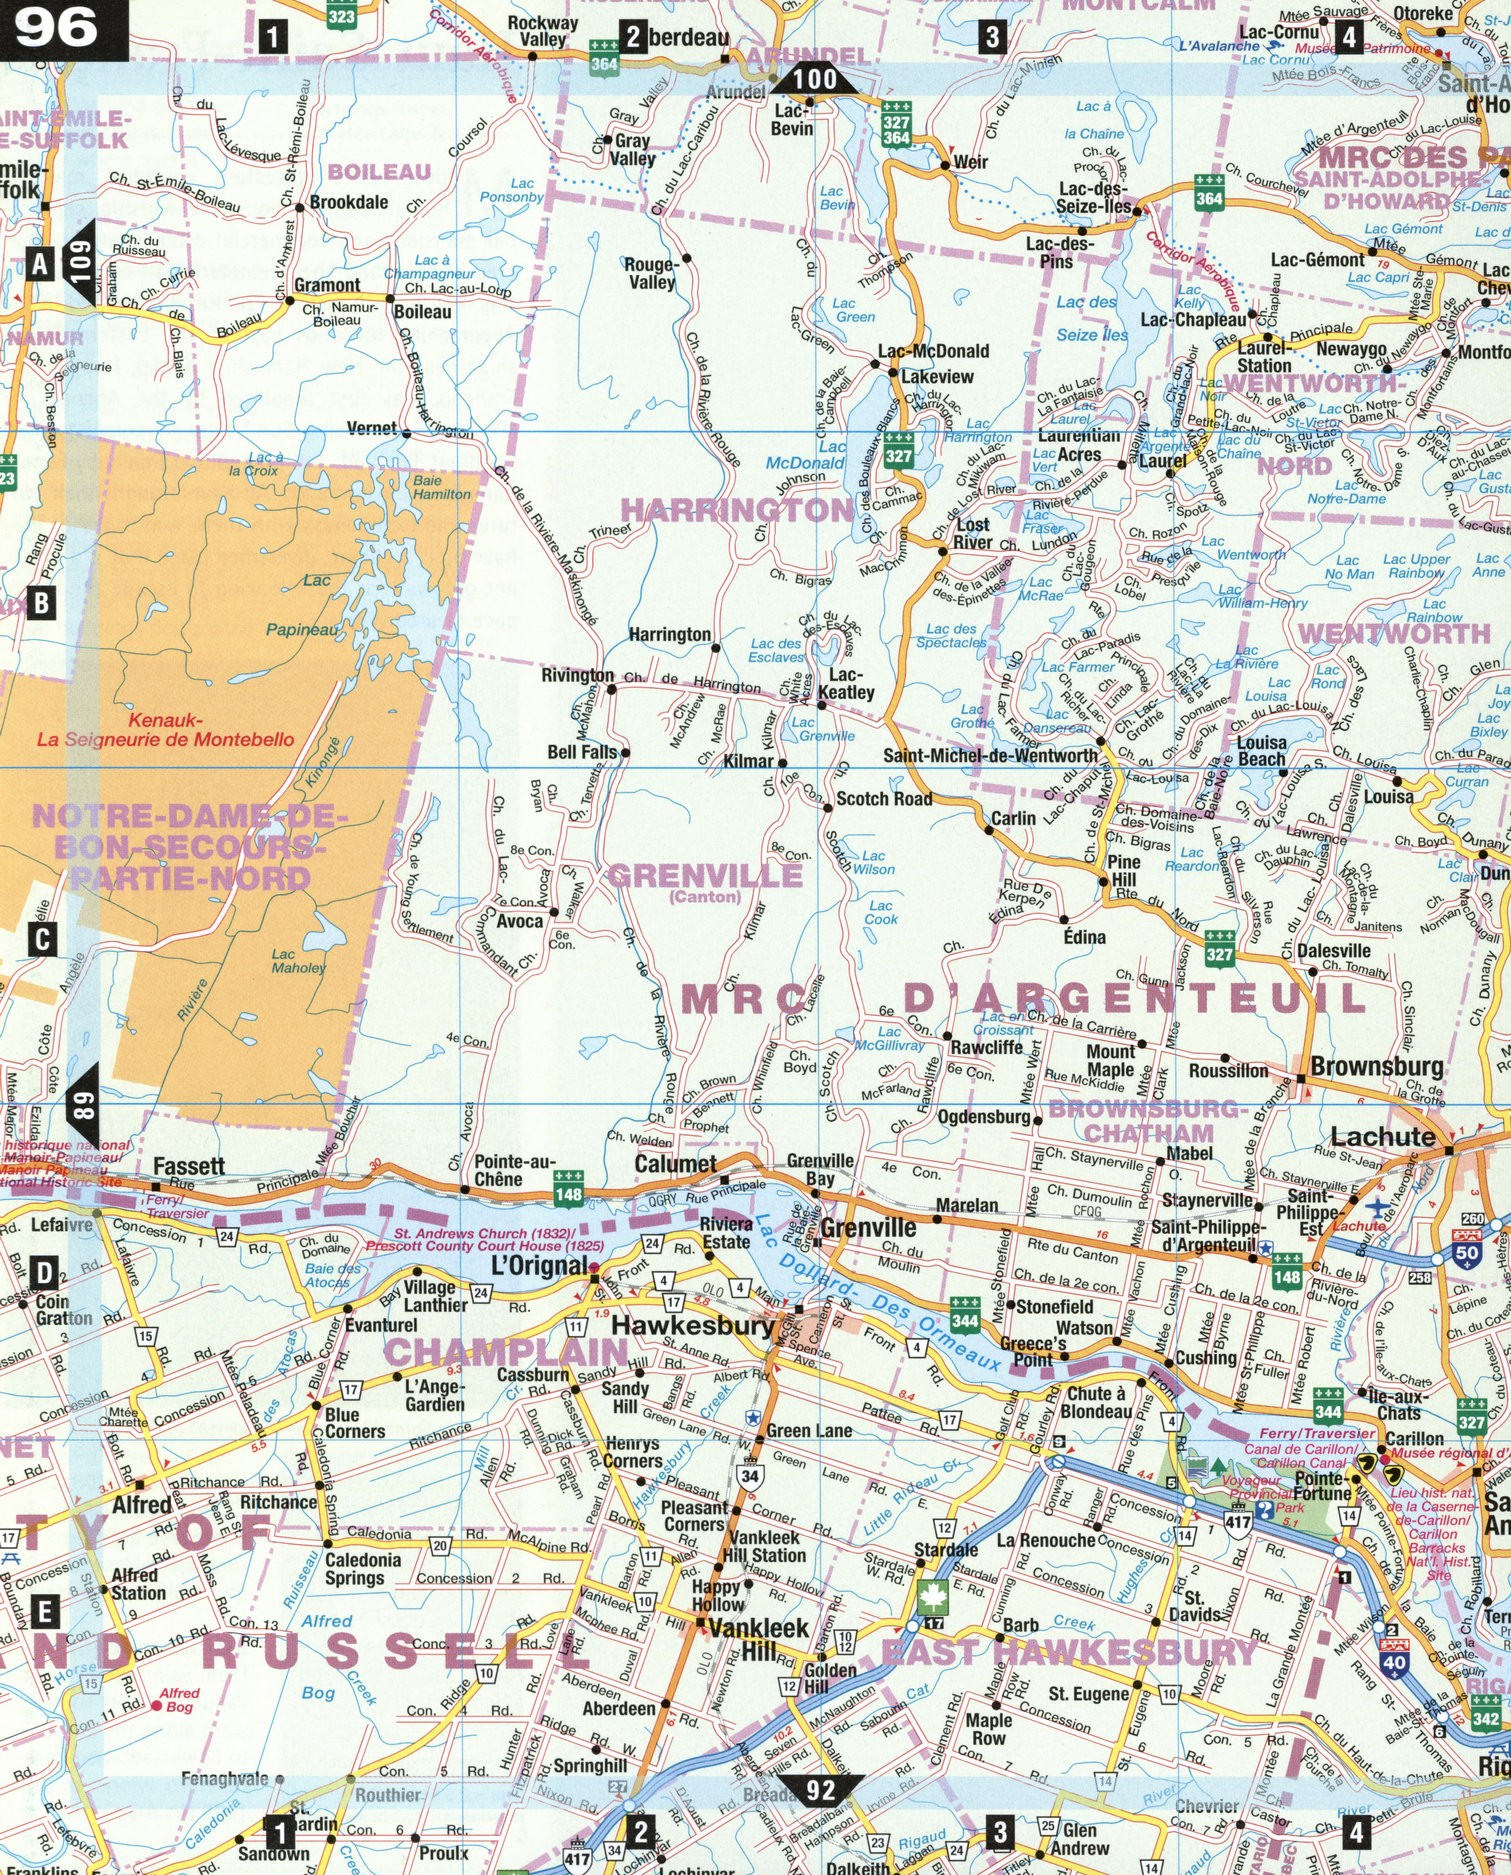 Laurentians Quebec Highway Map on belgium highway map, seattle highway map, portland highway map, france highway map, japan highway map, england highway map, italy highway map, miami highway map, appalachian mountains highway map, cincinnati highway map, north america highway map, new zealand highway map, romania highway map, portugal highway map, cape breton island highway map, paris highway map, delaware highway map, houston highway map, nashville highway map, bc highway map,